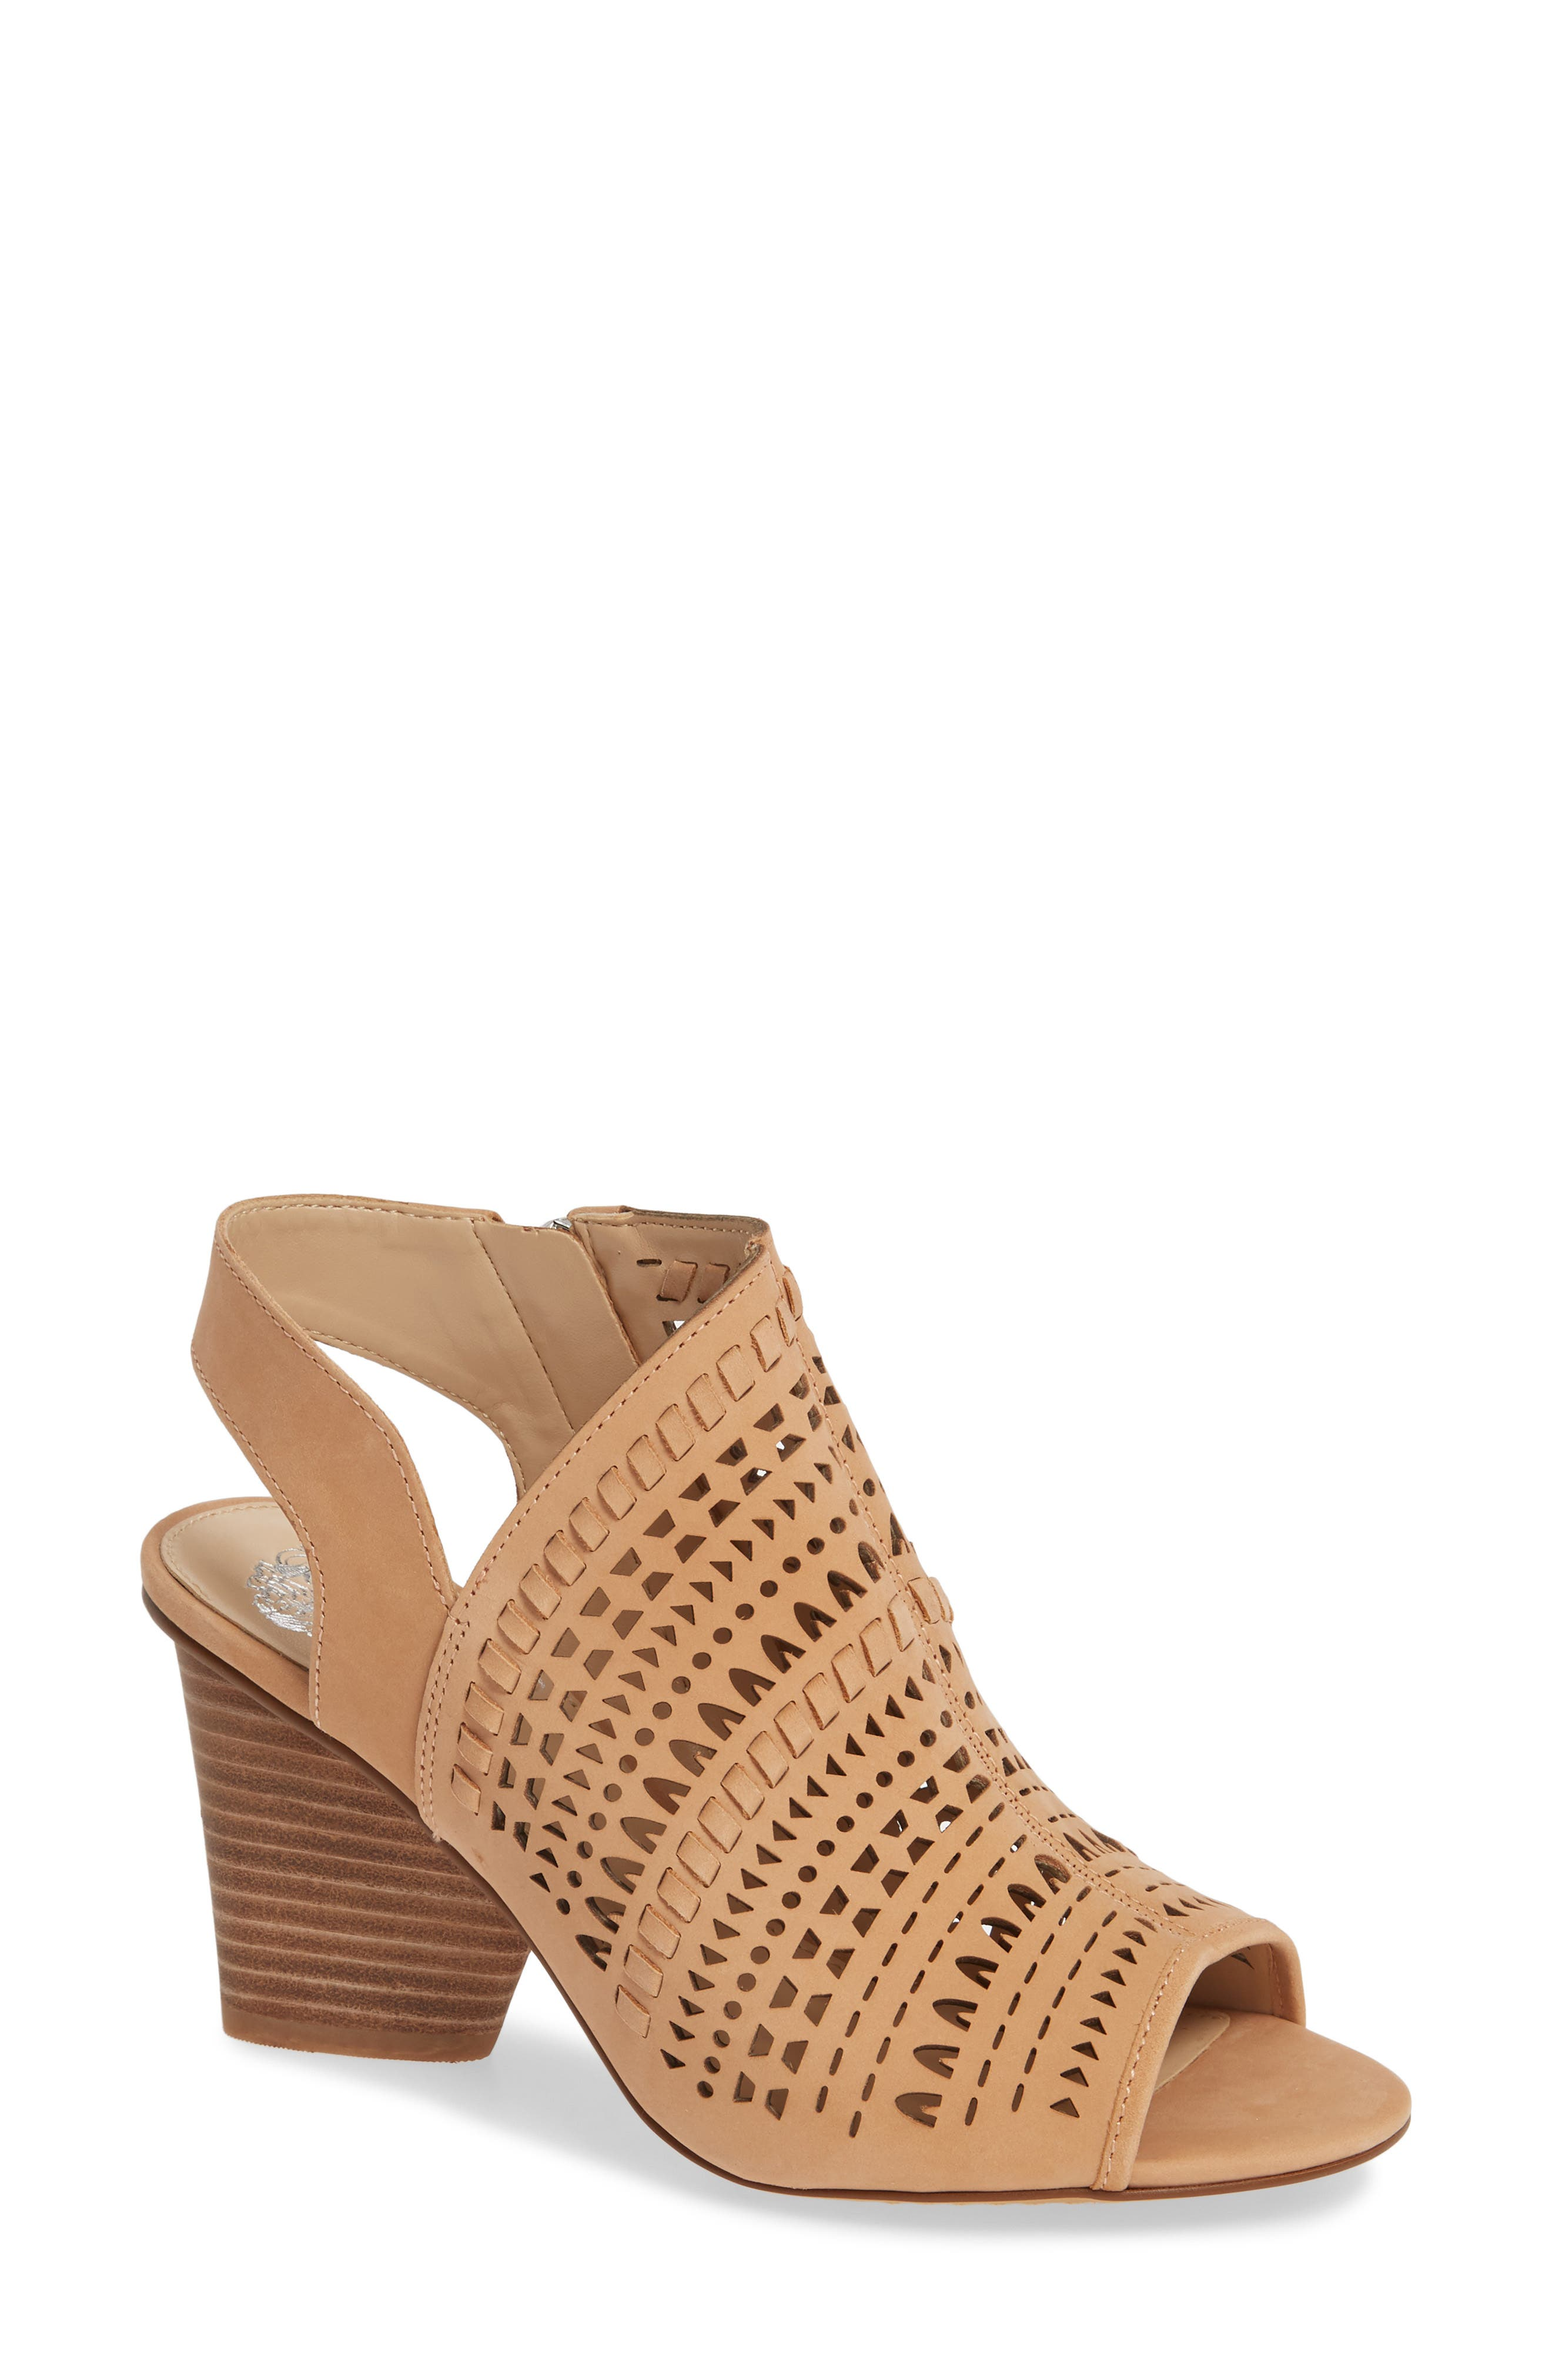 Vince Camuto Derechie Perforated Shield Sandal, Beige